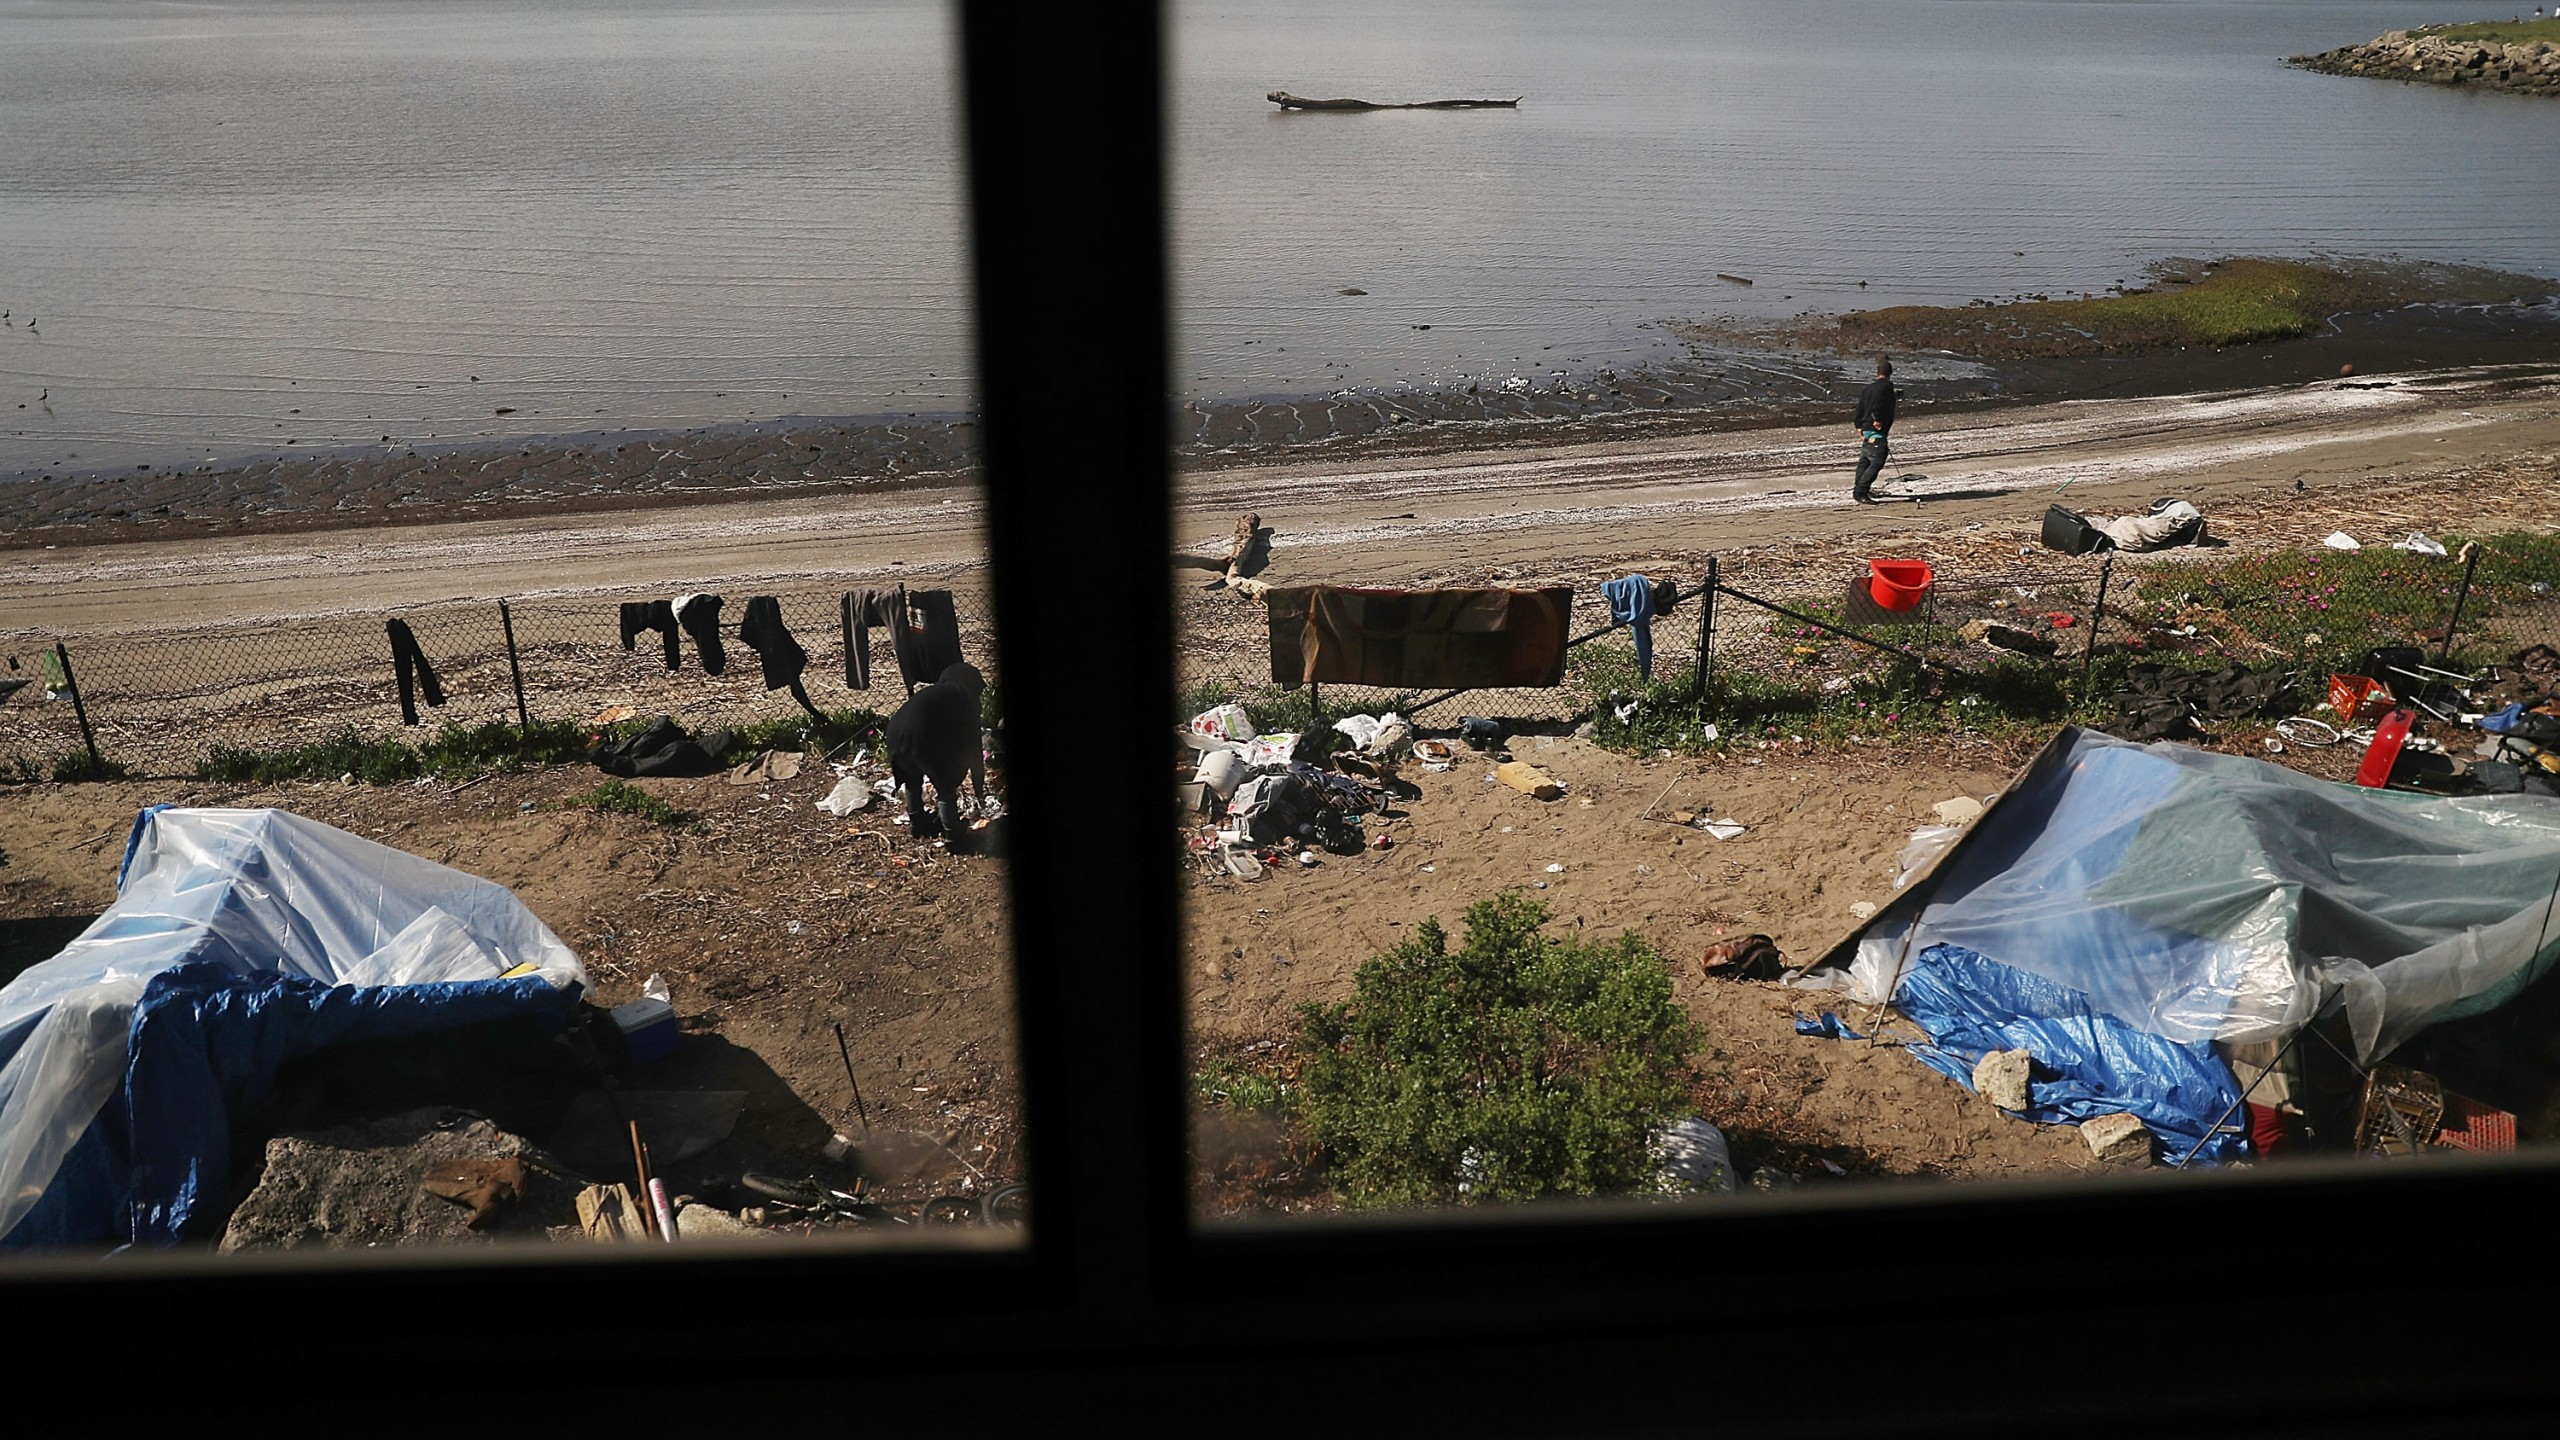 A homeless encampment is seen as Amtrak's California Zephyr passes along San Pablo Bay as it nears Emeryville on March 25, 2017. (Credit: Joe Raedle / Getty Images)